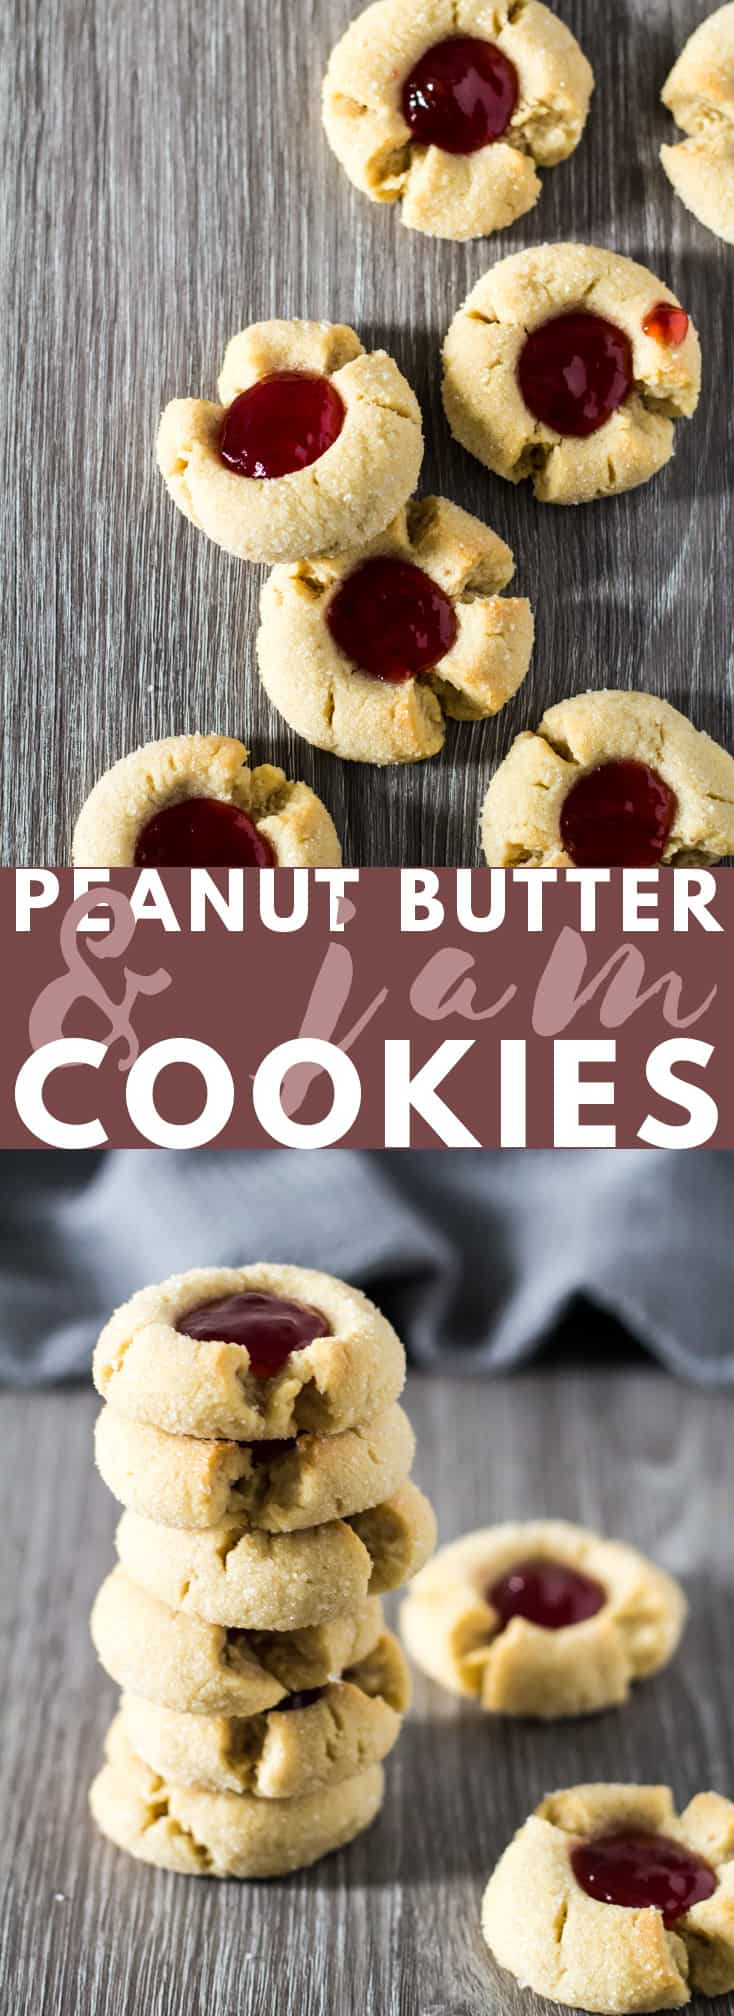 Peanut Butter & Jam Thumbprint Cookies - Deliciously soft and crispy thumbprint cookies loaded with peanut butter and filled with raspberry jam. The perfect cookies for PB&J lovers!